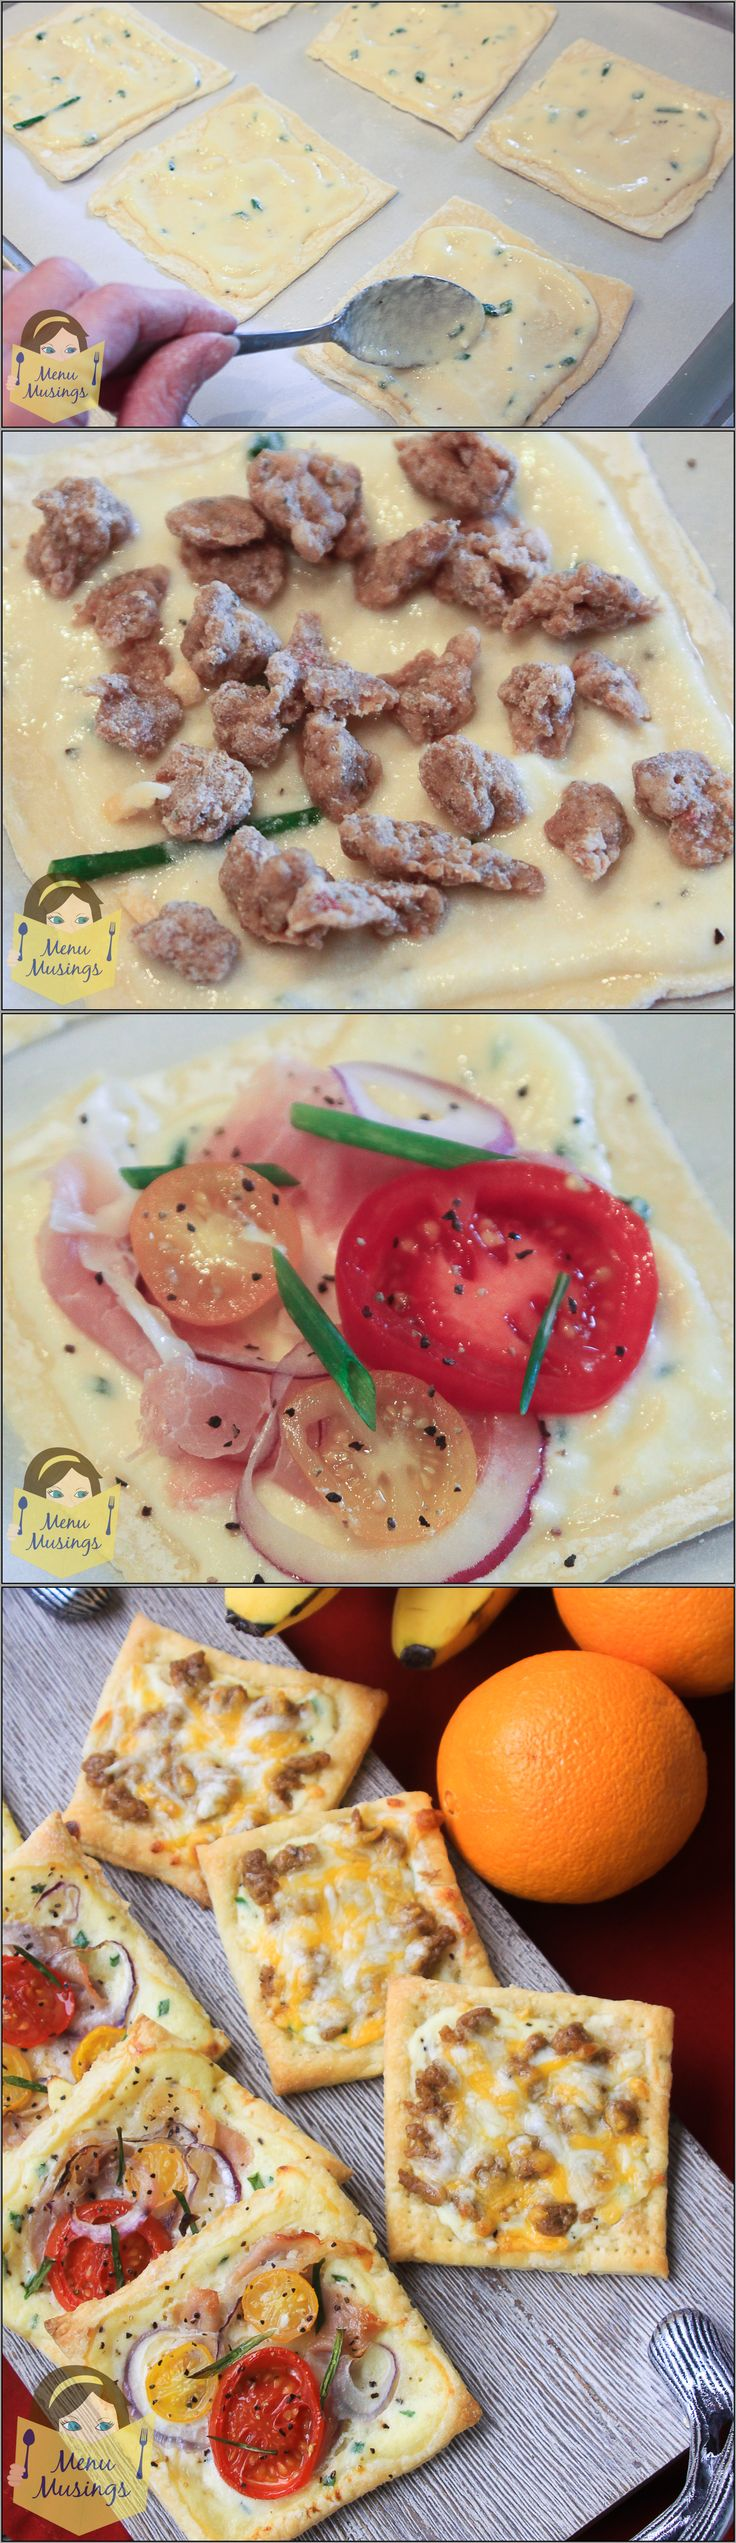 Puff Pastry Breakfast Pizzas - Make ahead of time, pop into the toaster oven before leaving for school or work! Any combination you choose, like these prosciutto and veggie or sausage and cheese ones for the kiddos! Step-by-step photos. ♥ ♥